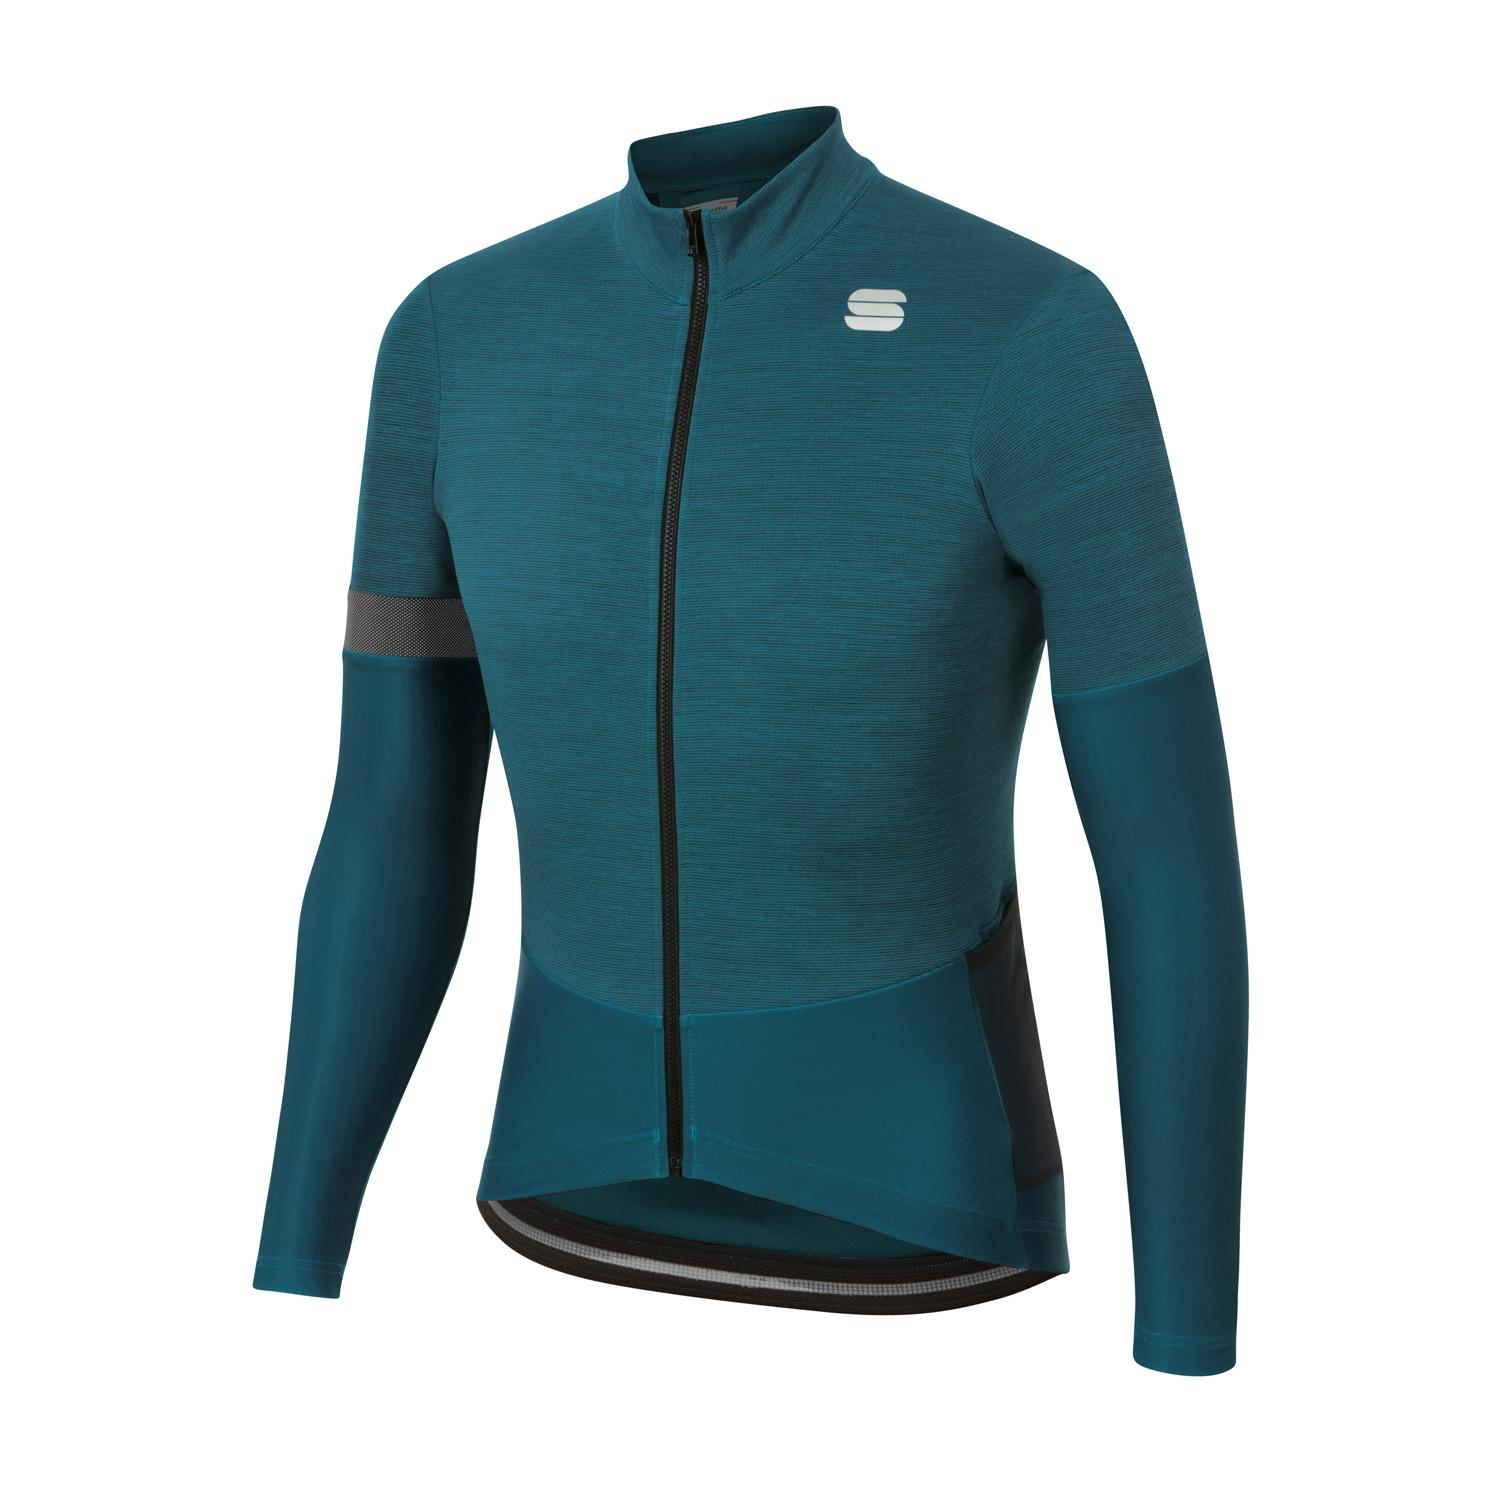 Sportful Fietsshirt lange mouwen Heren Blauw - SUPERGIARA THERMAL JERSEY BLUE CORSAIR